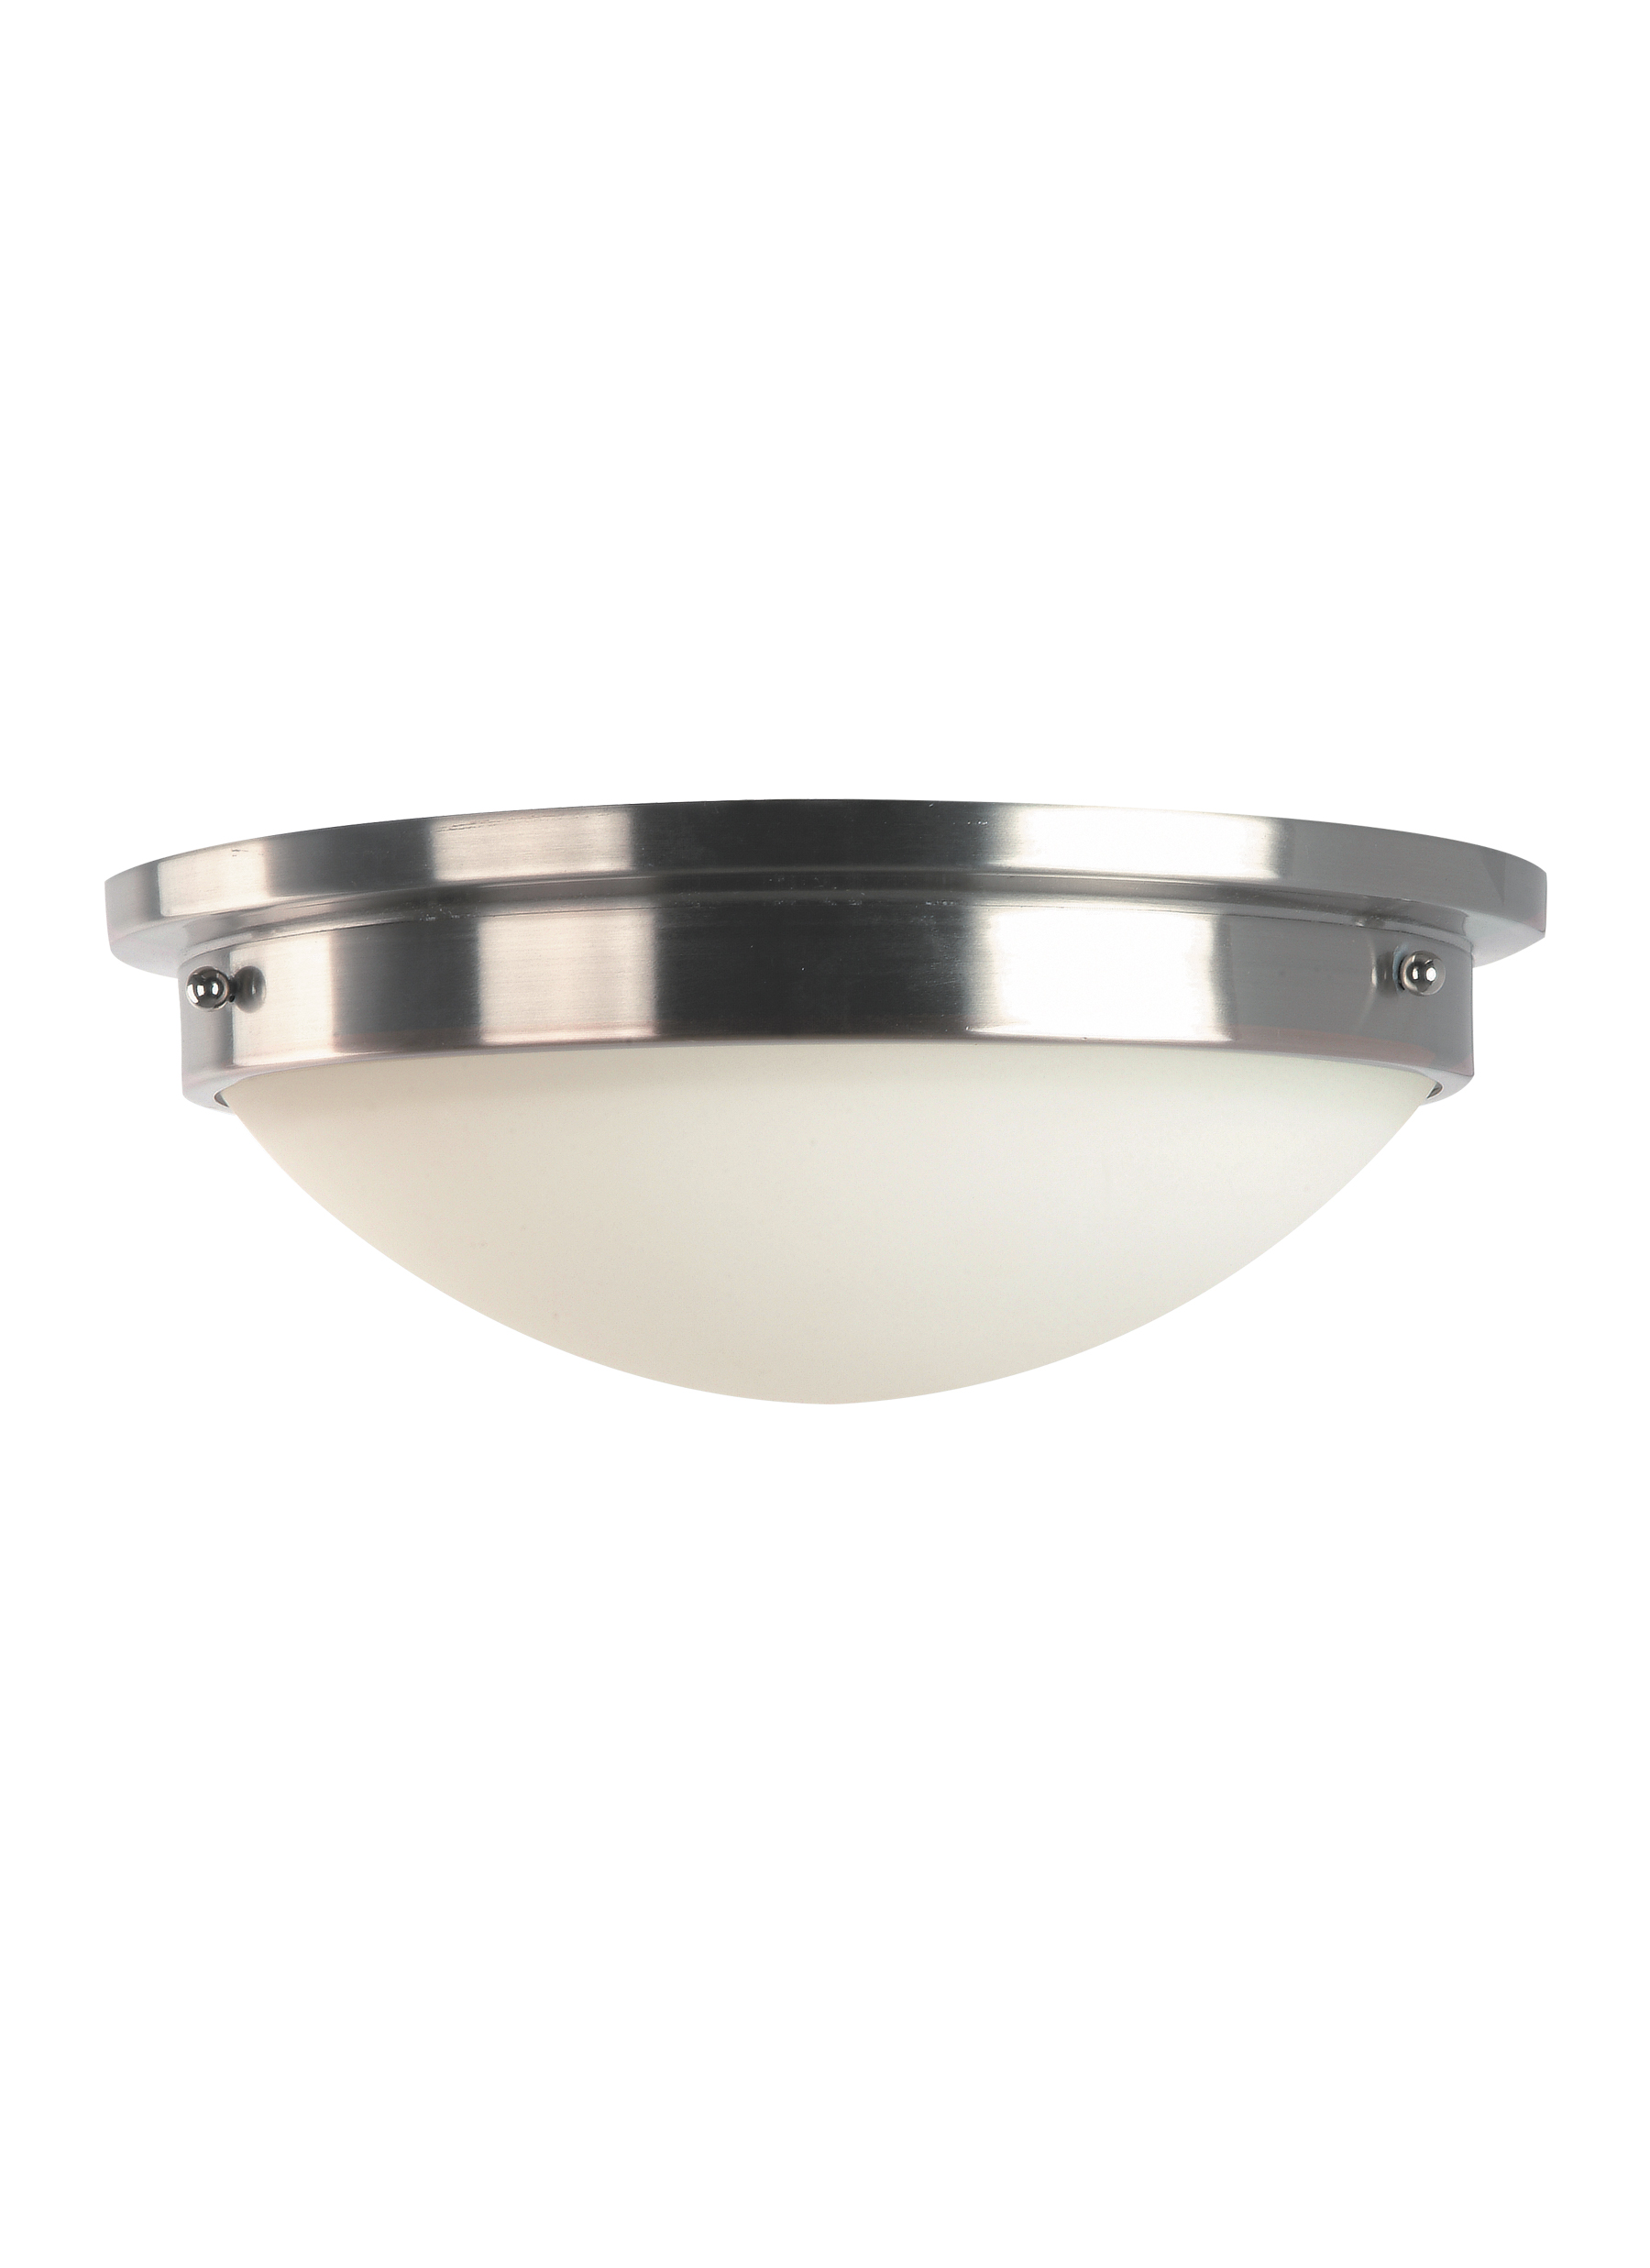 light mount with max everflower led finish flush lights painted floral shape semi pp modern simple ceiling